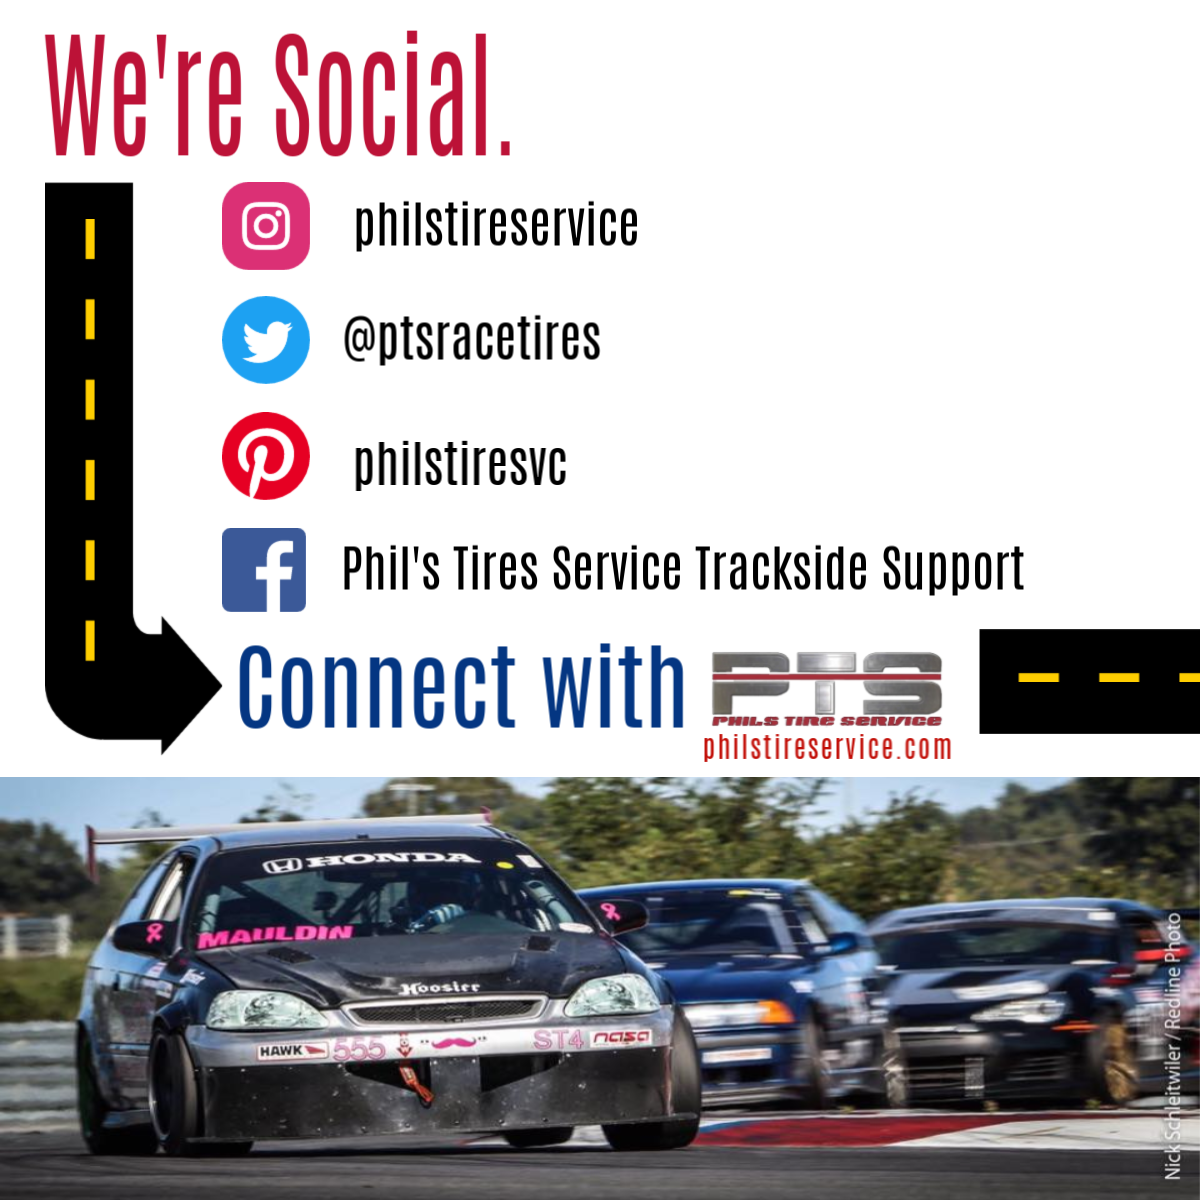 We're Social ... How About You? Let's Connect! (awesome